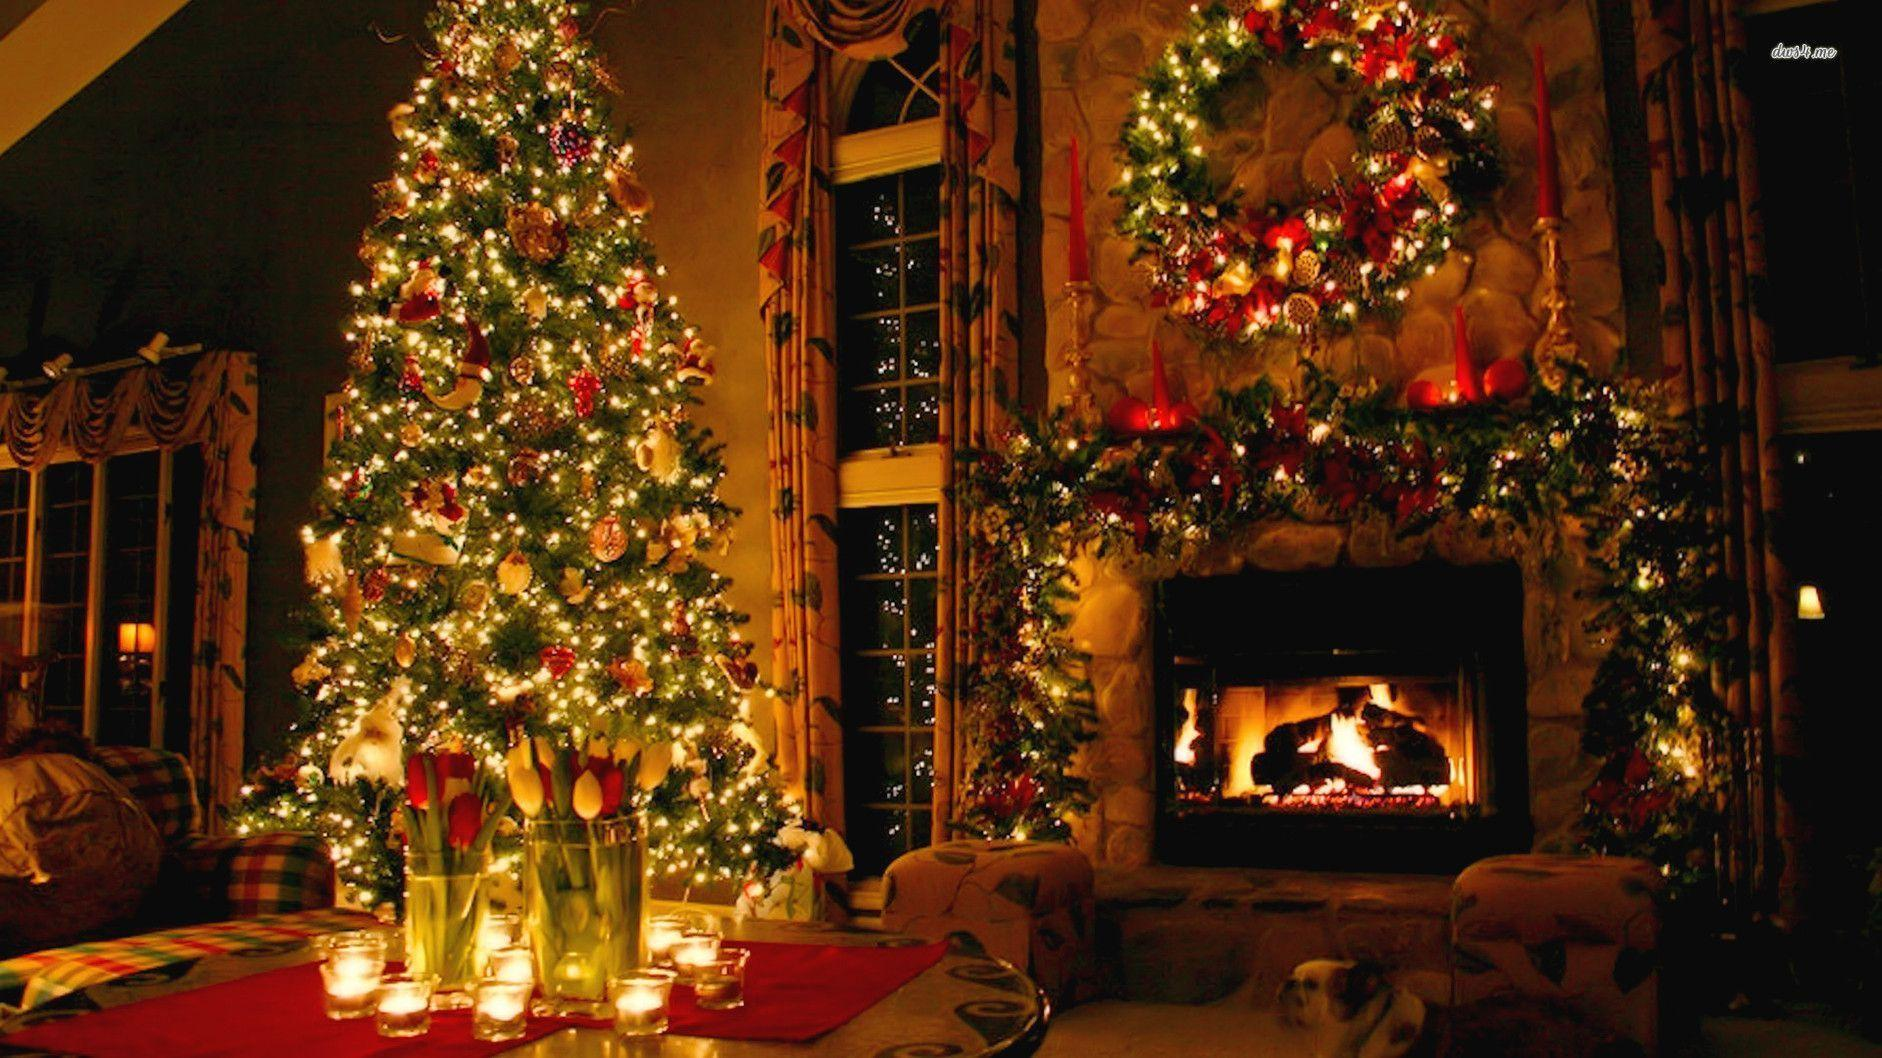 Exceptional Christmas Fireplace Part - 11: Fireplace Christmas Decor Wallpaper In HD | HD Wallpapers